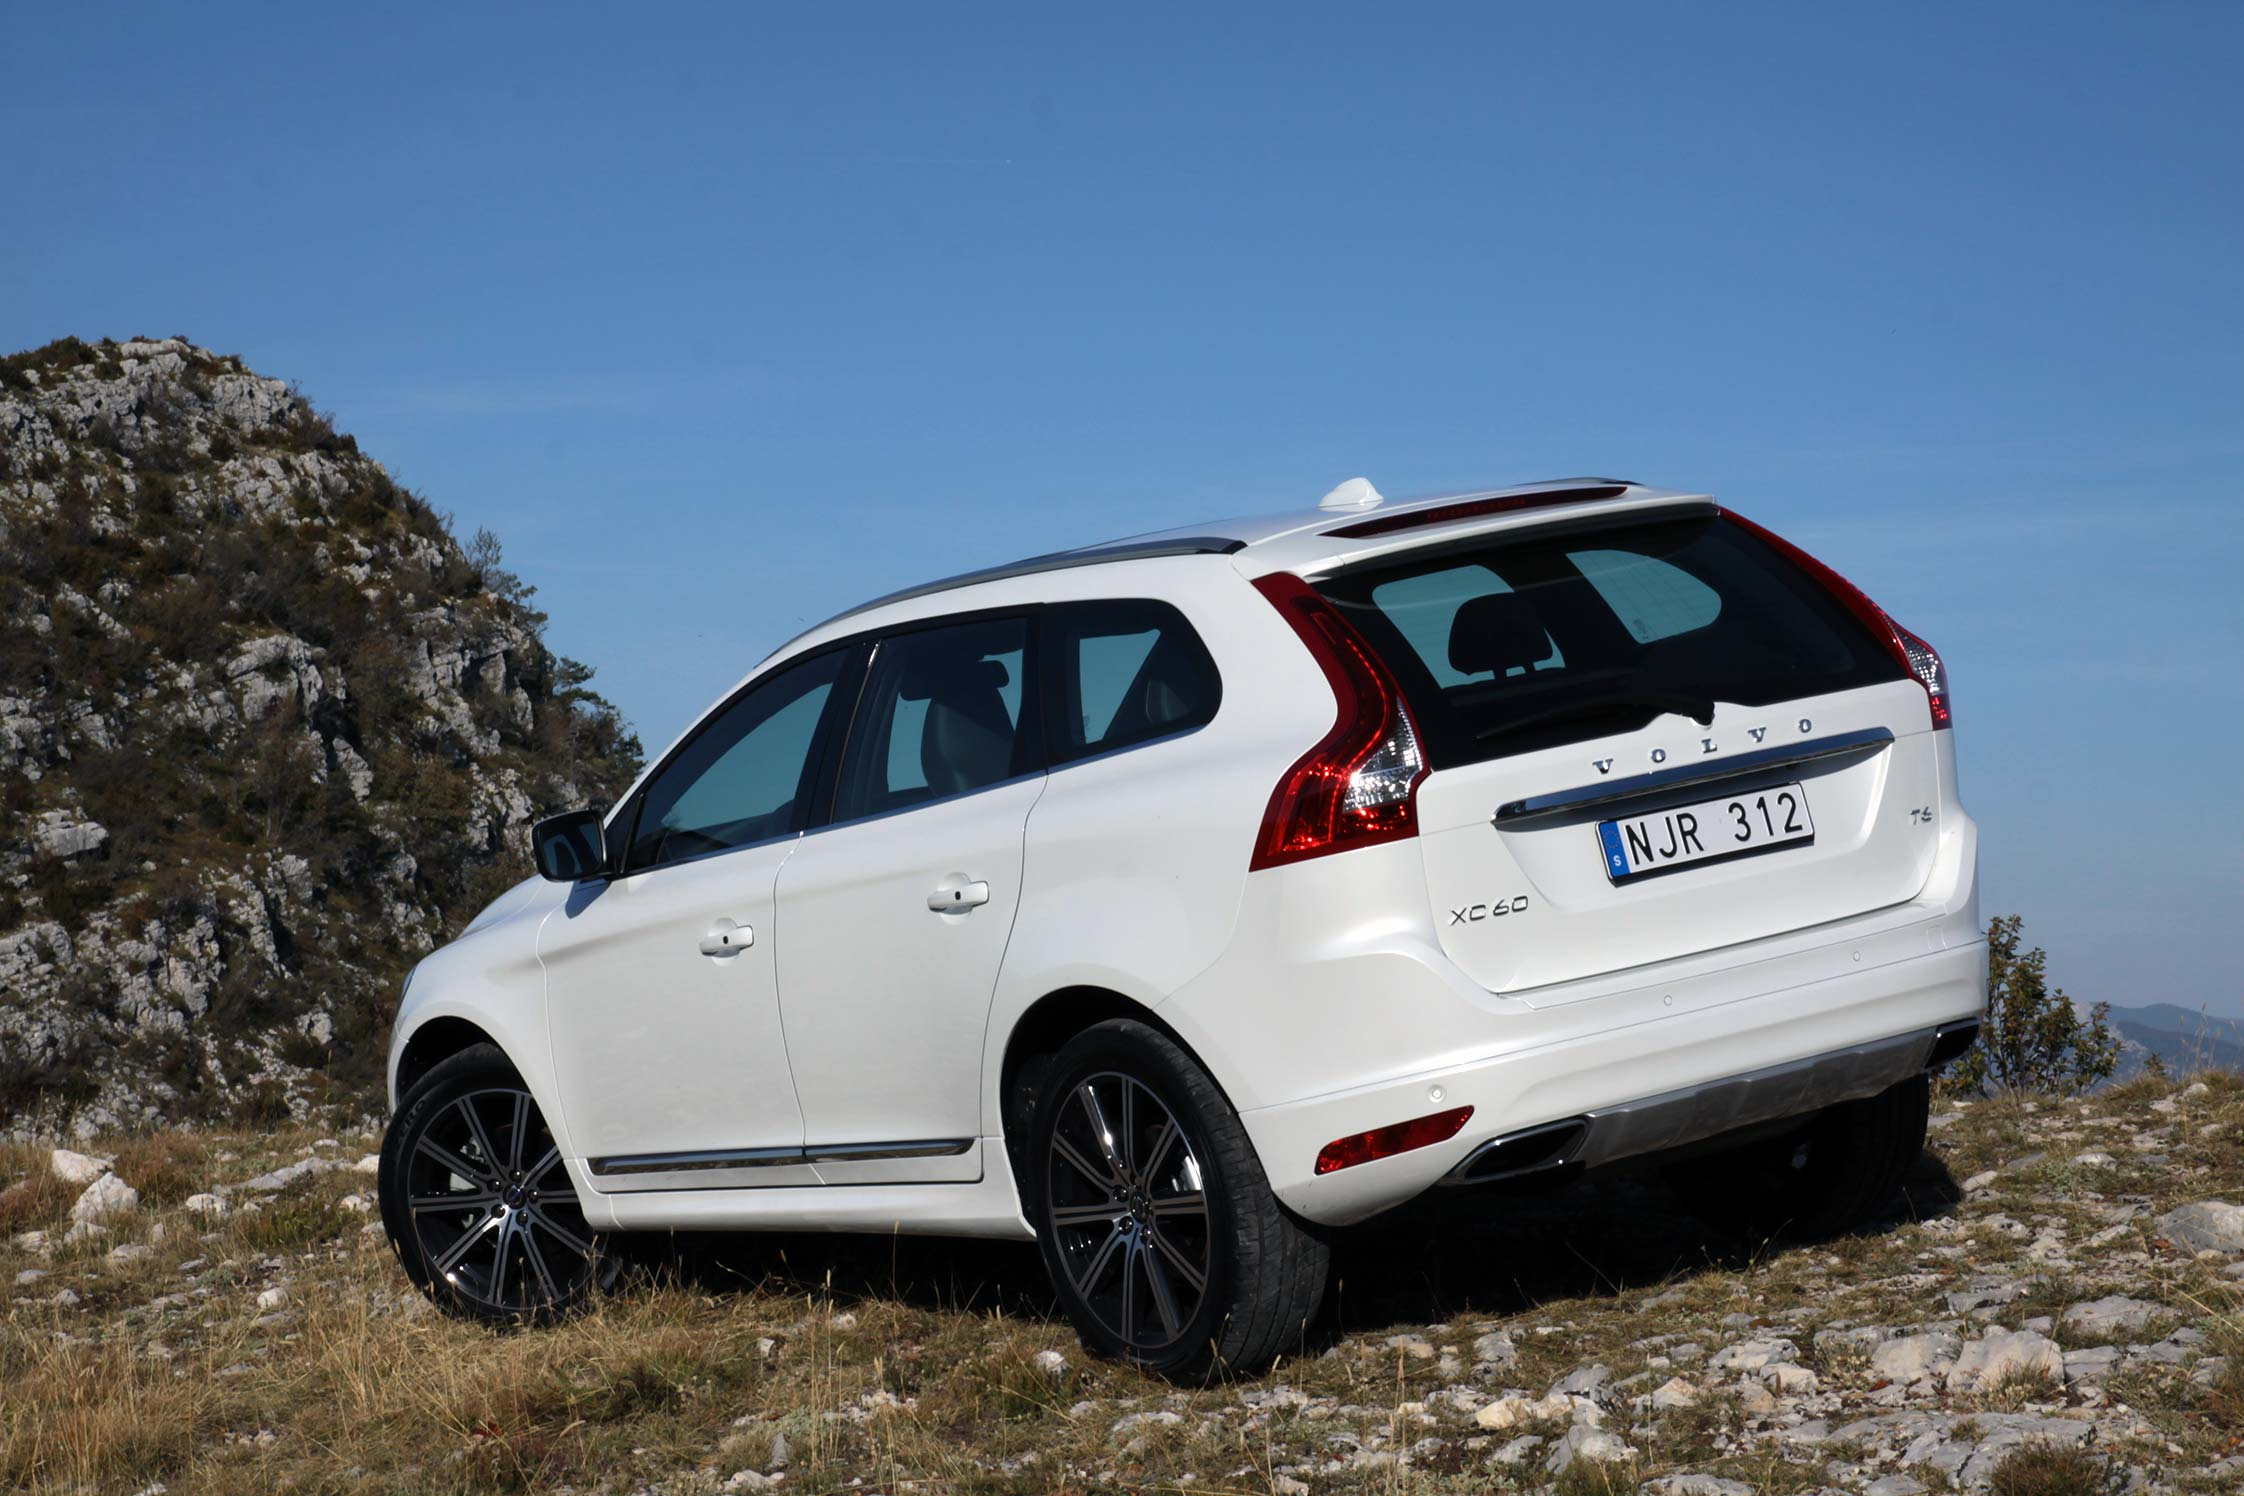 essai volvo xc60 t6 drive e motorlegend. Black Bedroom Furniture Sets. Home Design Ideas